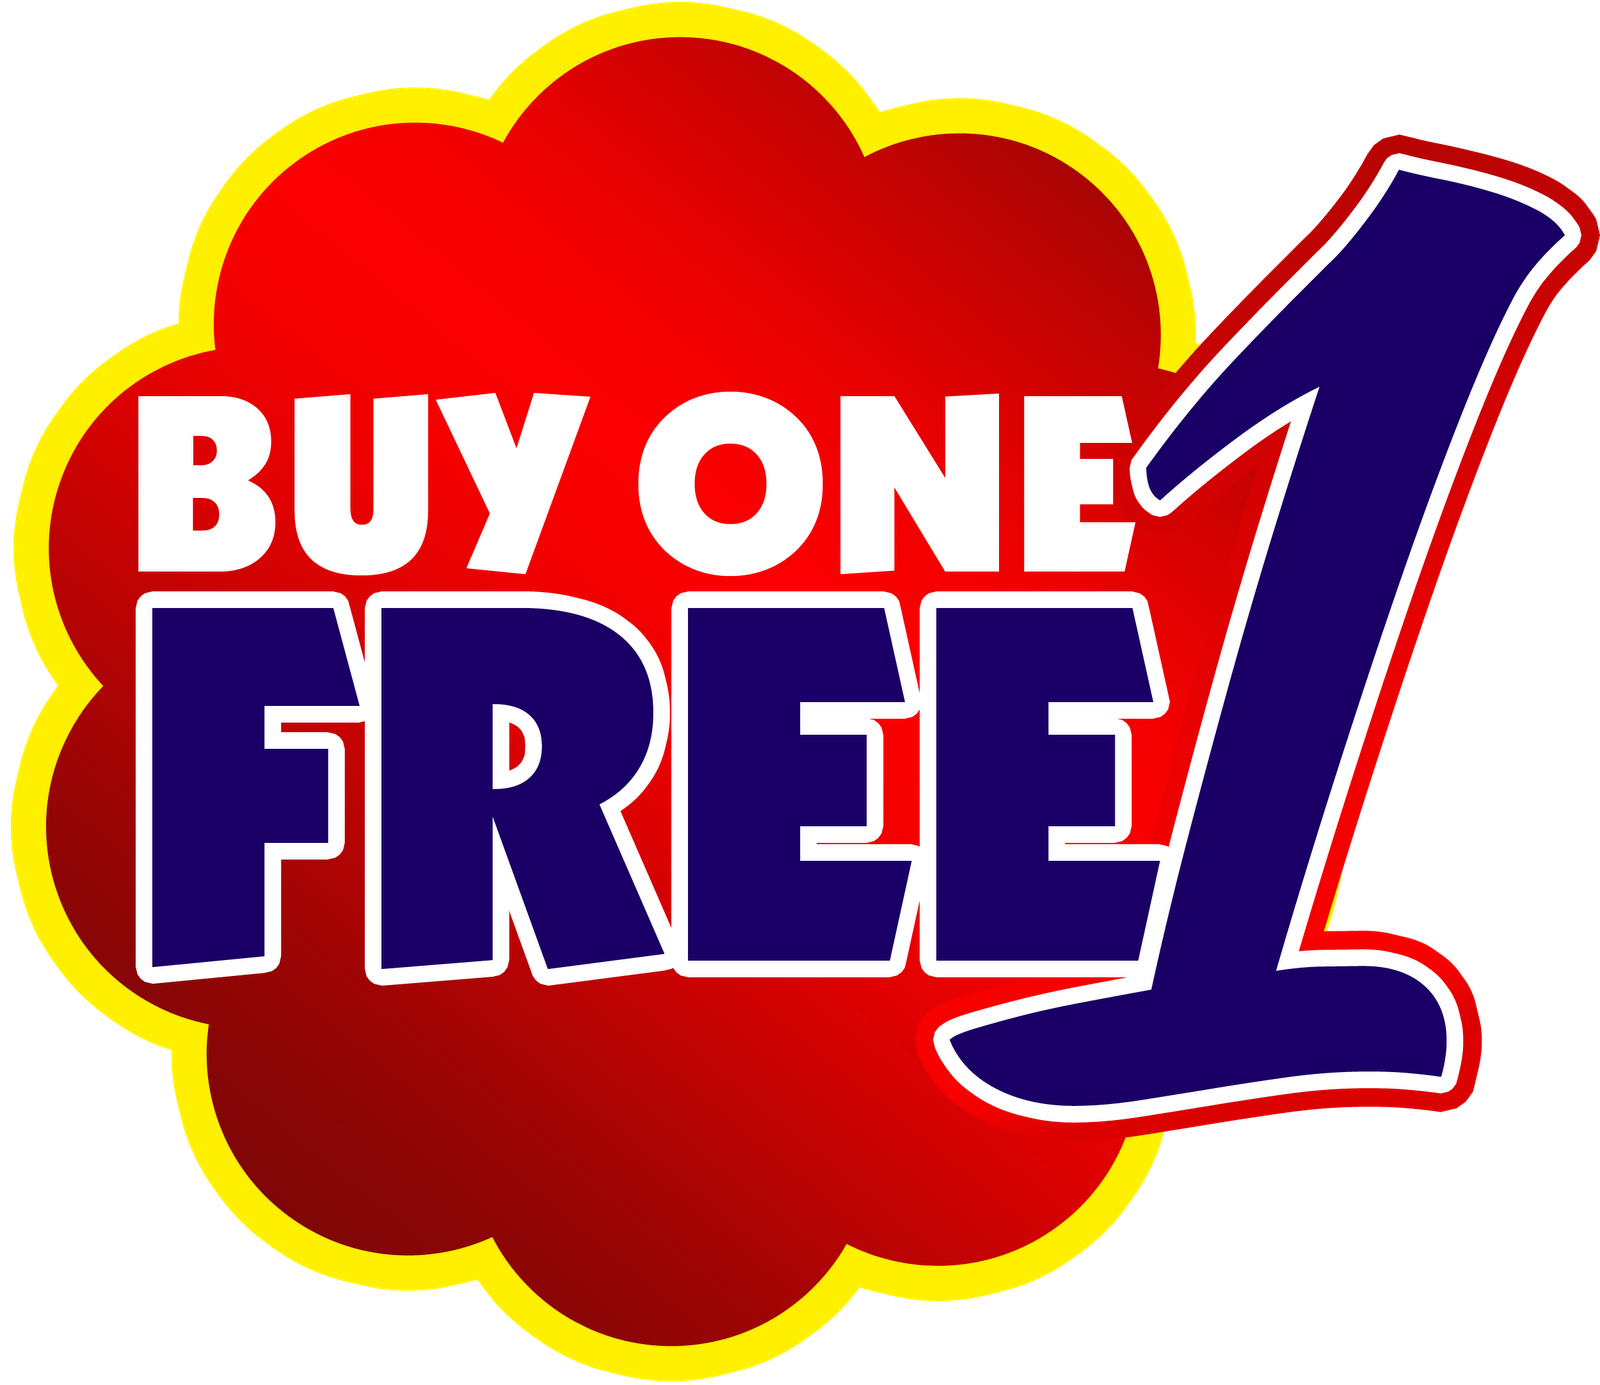 Buy One Get One Free - Kada Cinemas and Entertainment Center